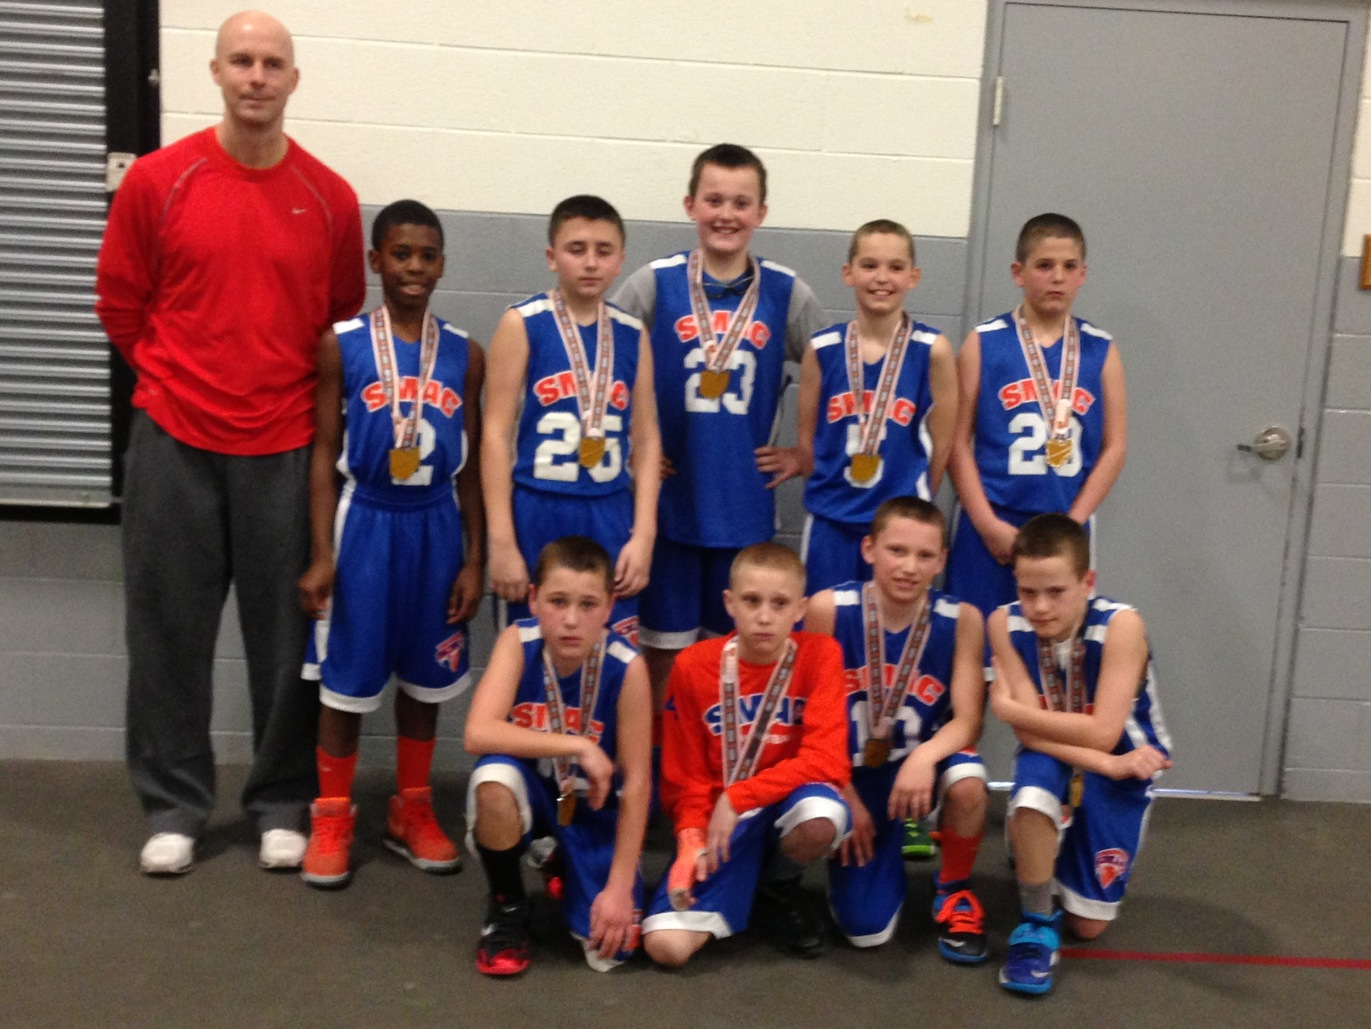 5th Grade Boys Runner-up – SMAC Future